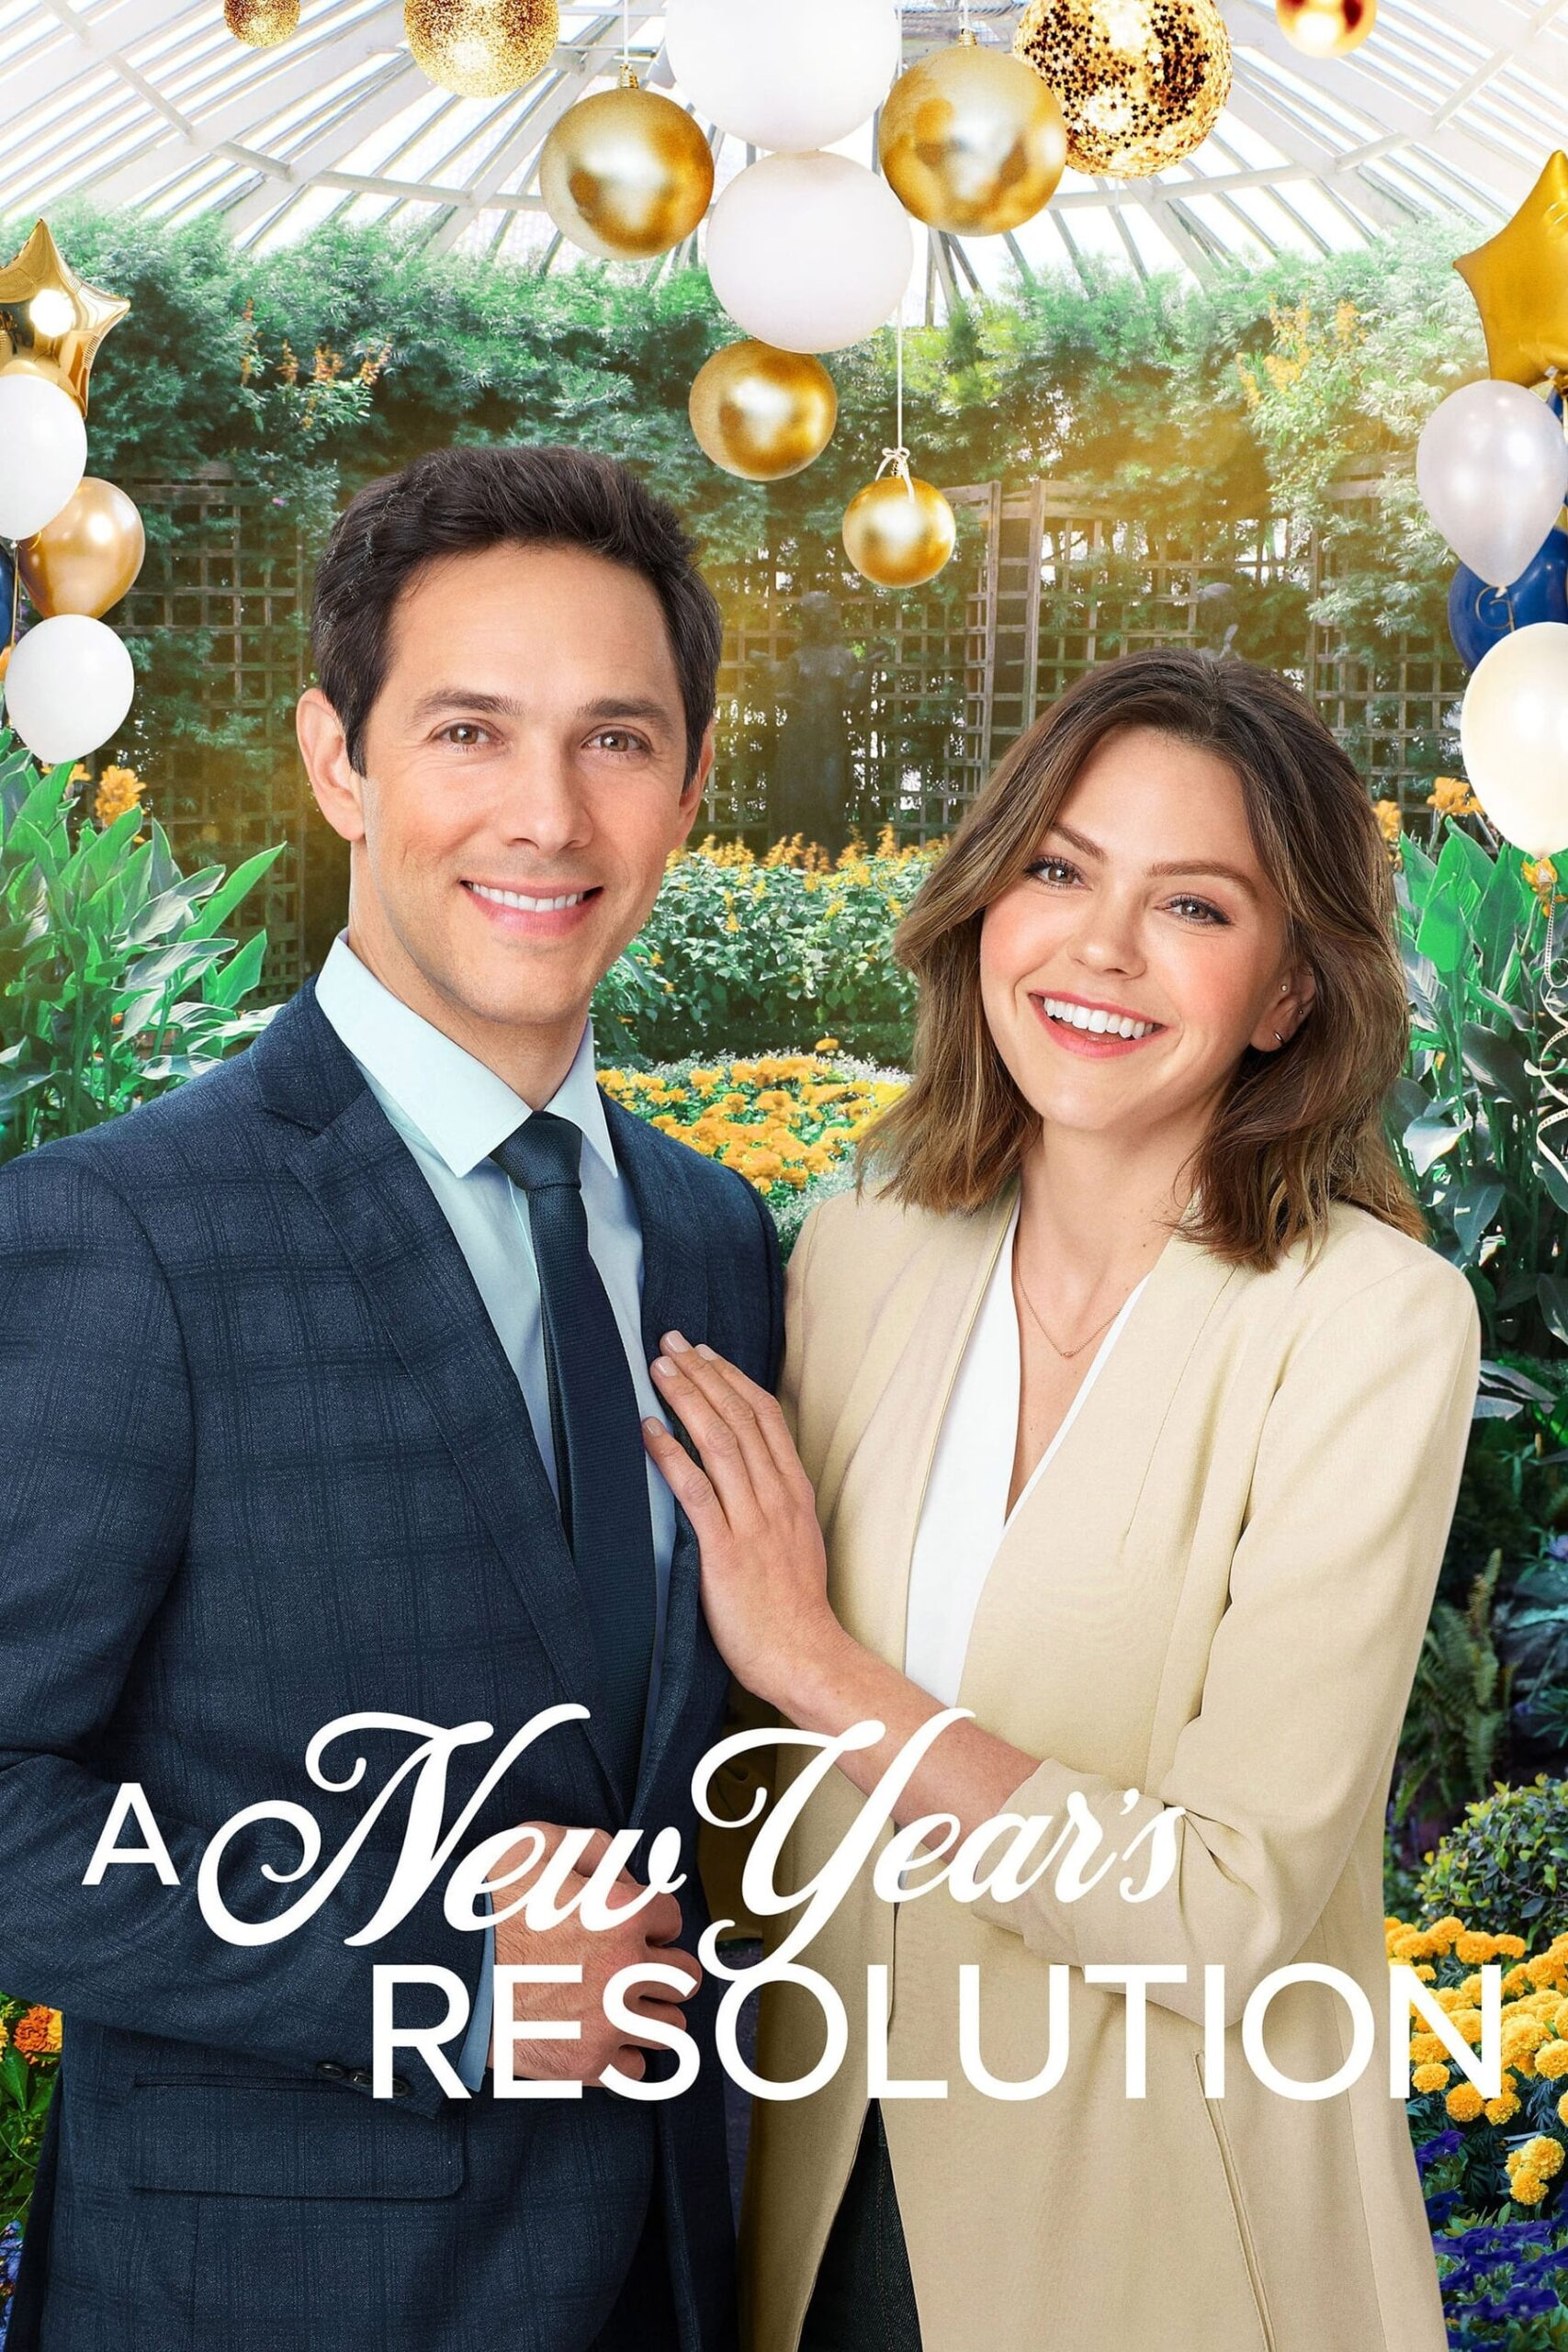 Download A New Year's Resolution (2021)Full Movie [480p, 720p, 1080p] + Subtitle